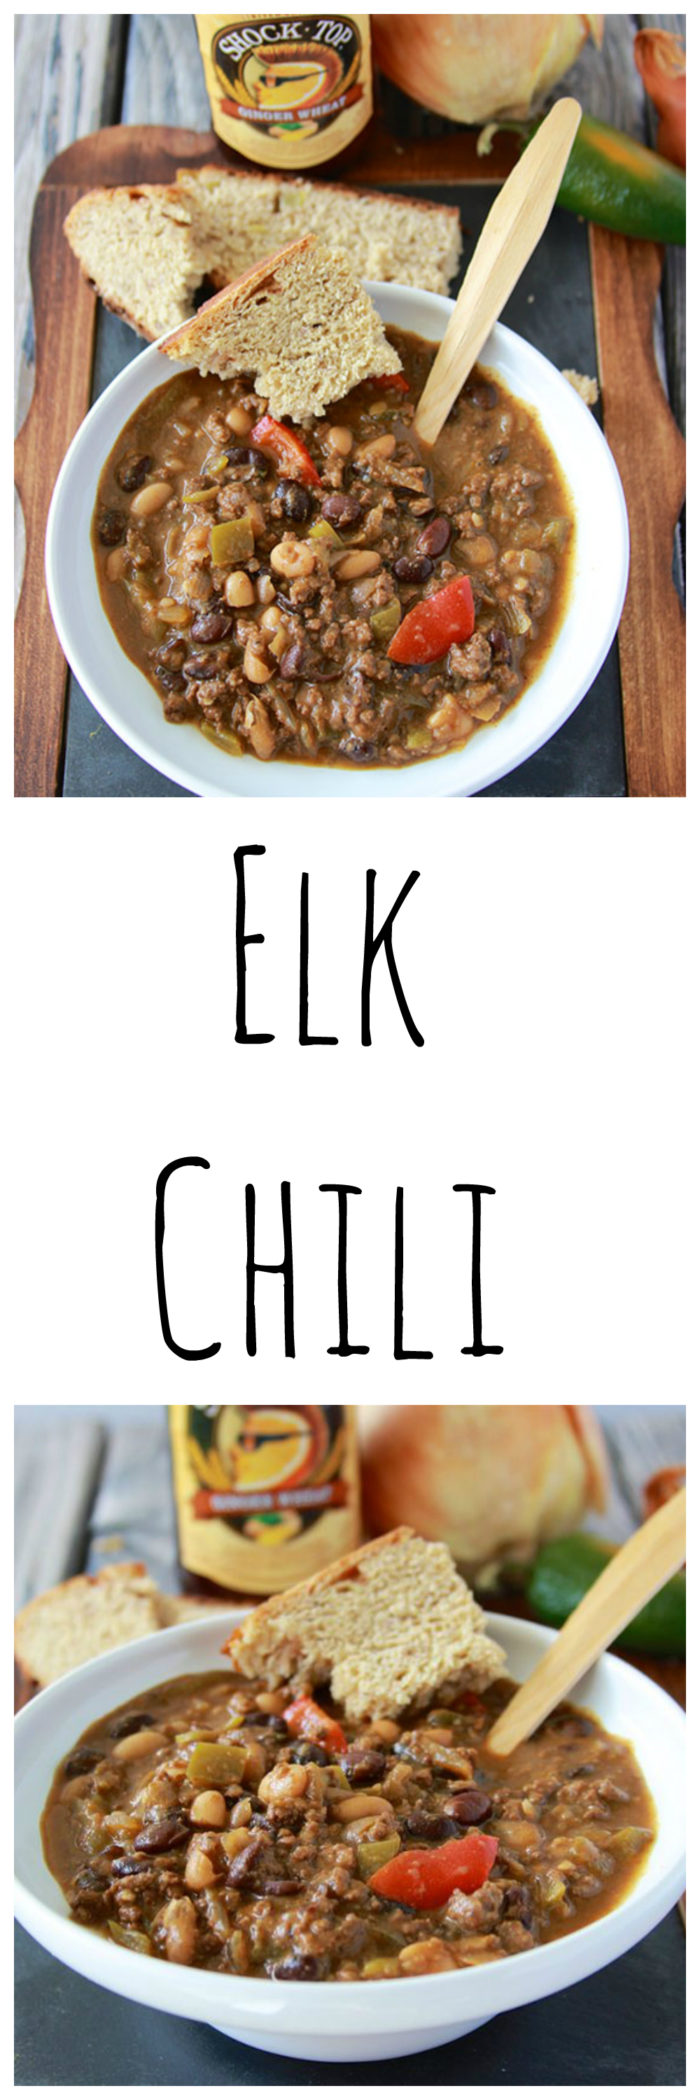 Elk Chili is the BEST chili ever. . . it's total comfort in a bowl and just what chilly evenings need! www.cookingwithruthie.com